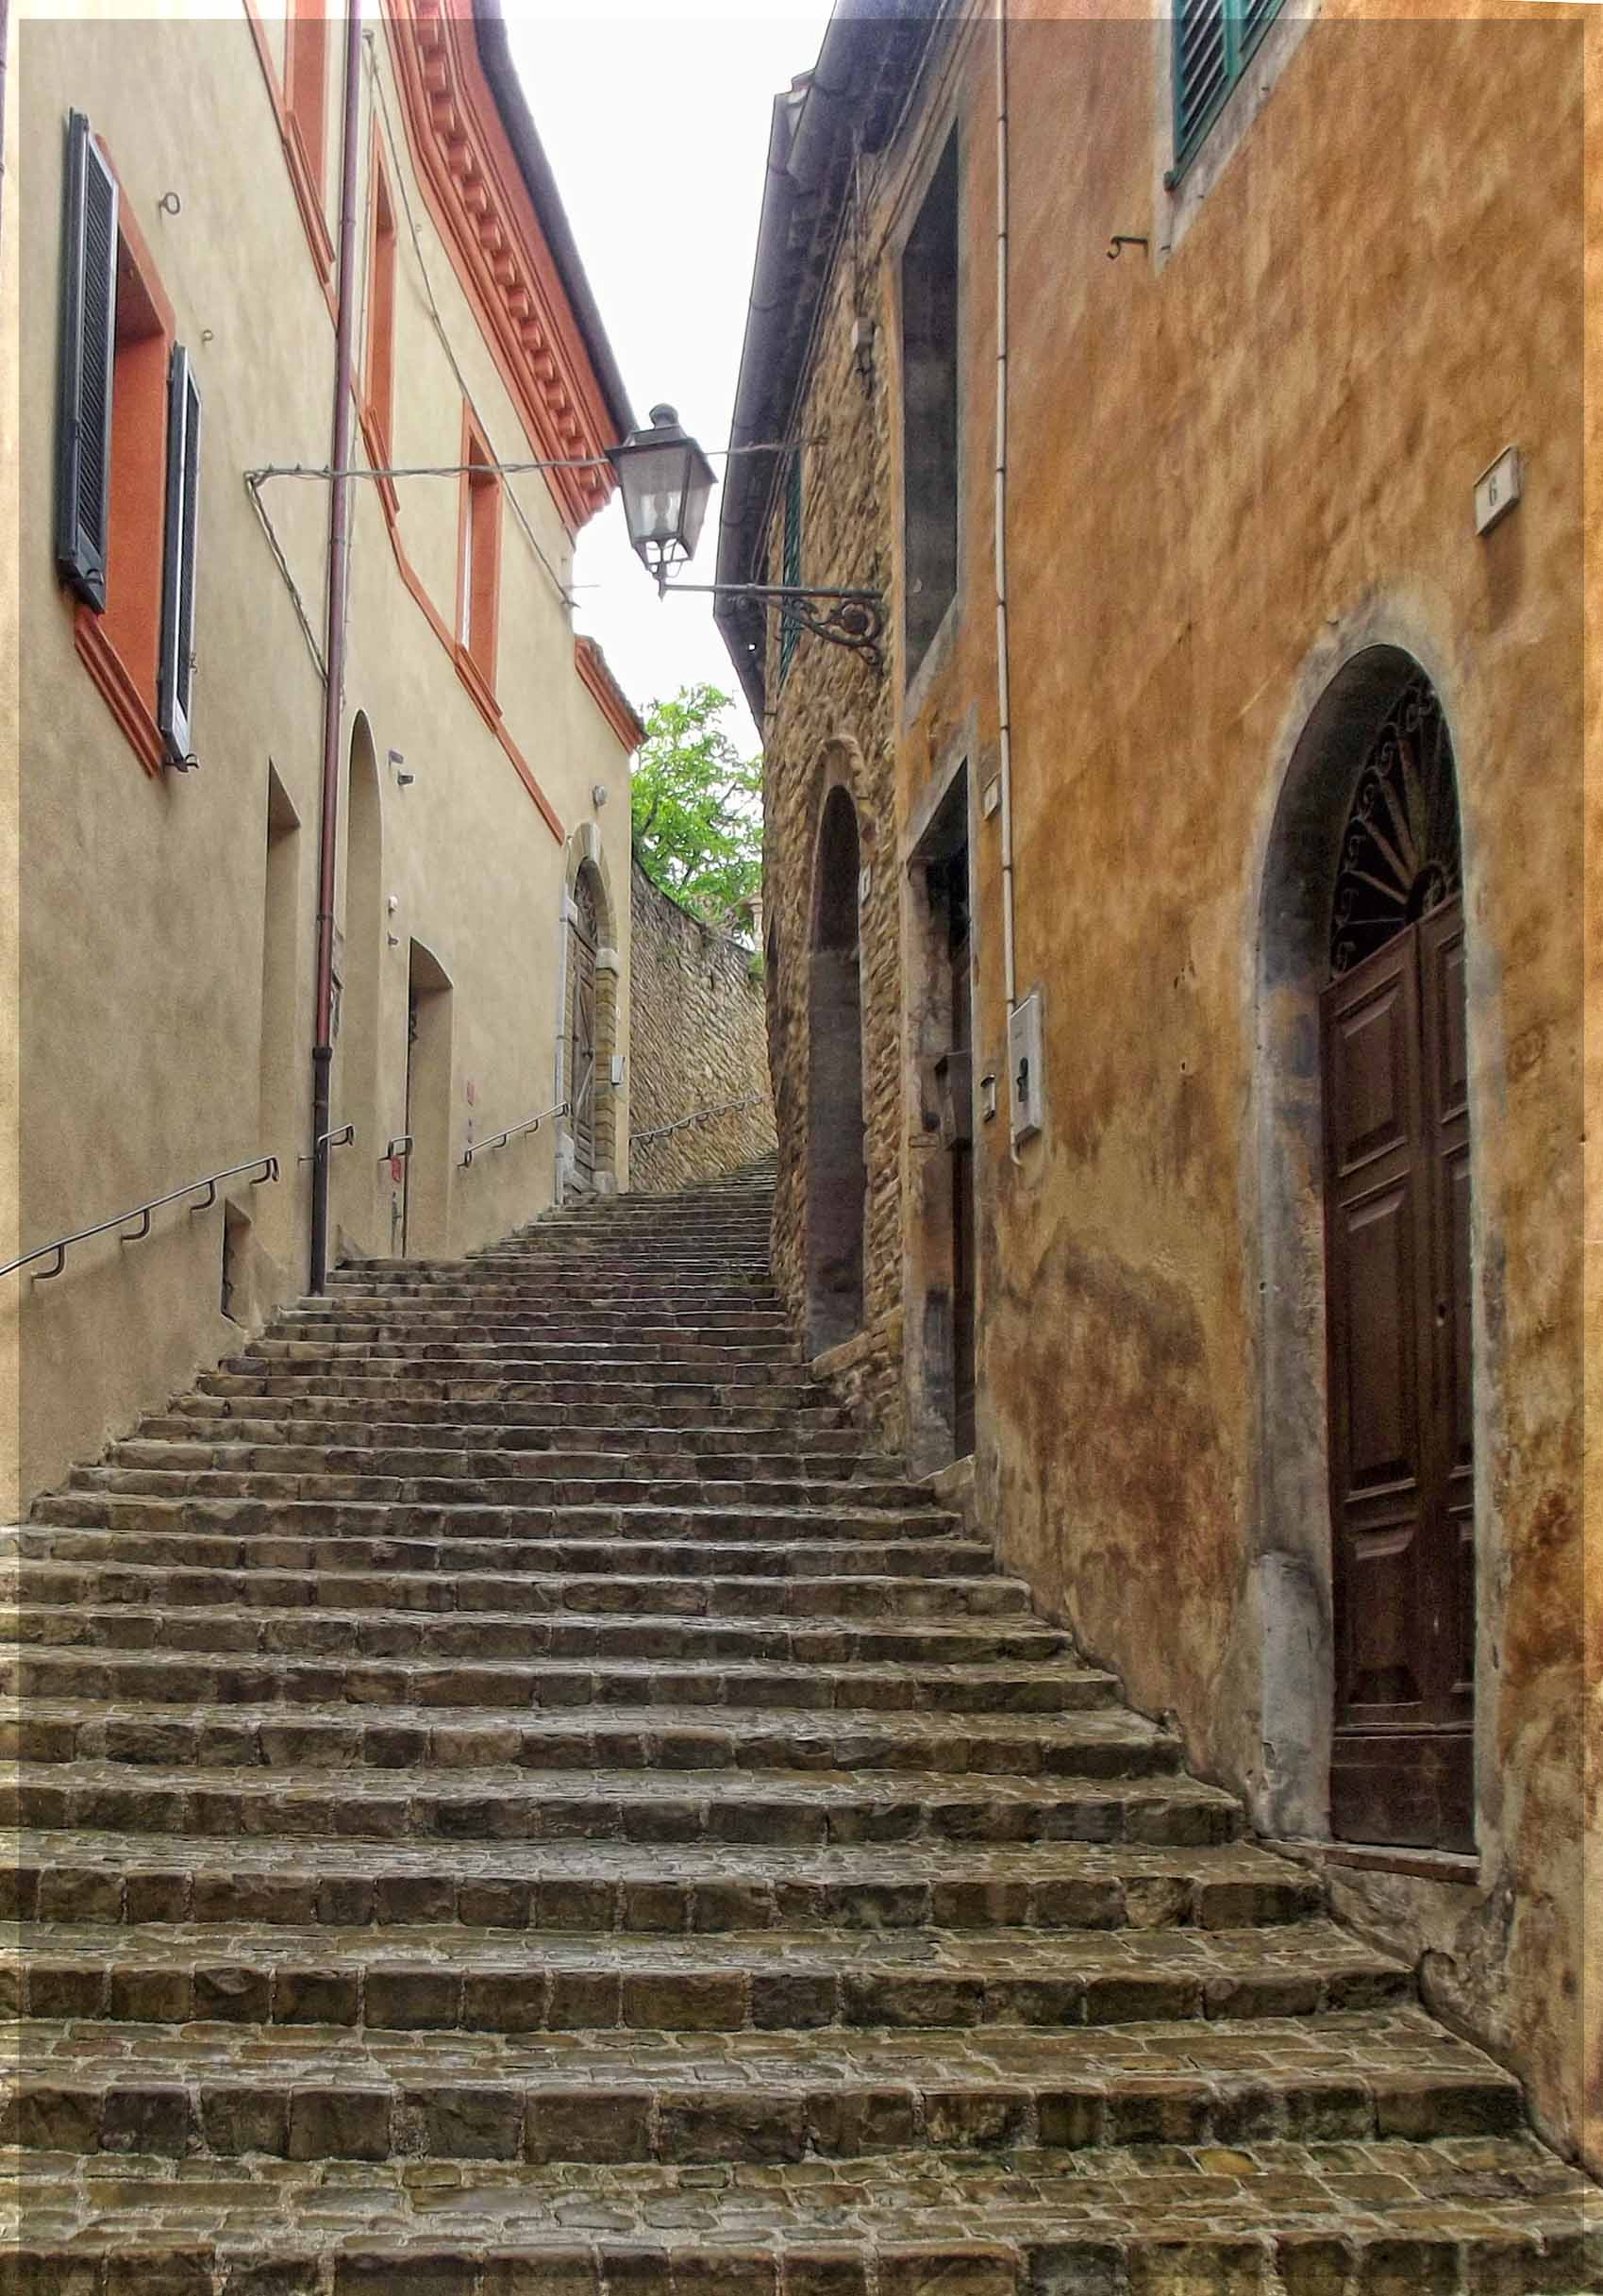 Steps leading up between houses